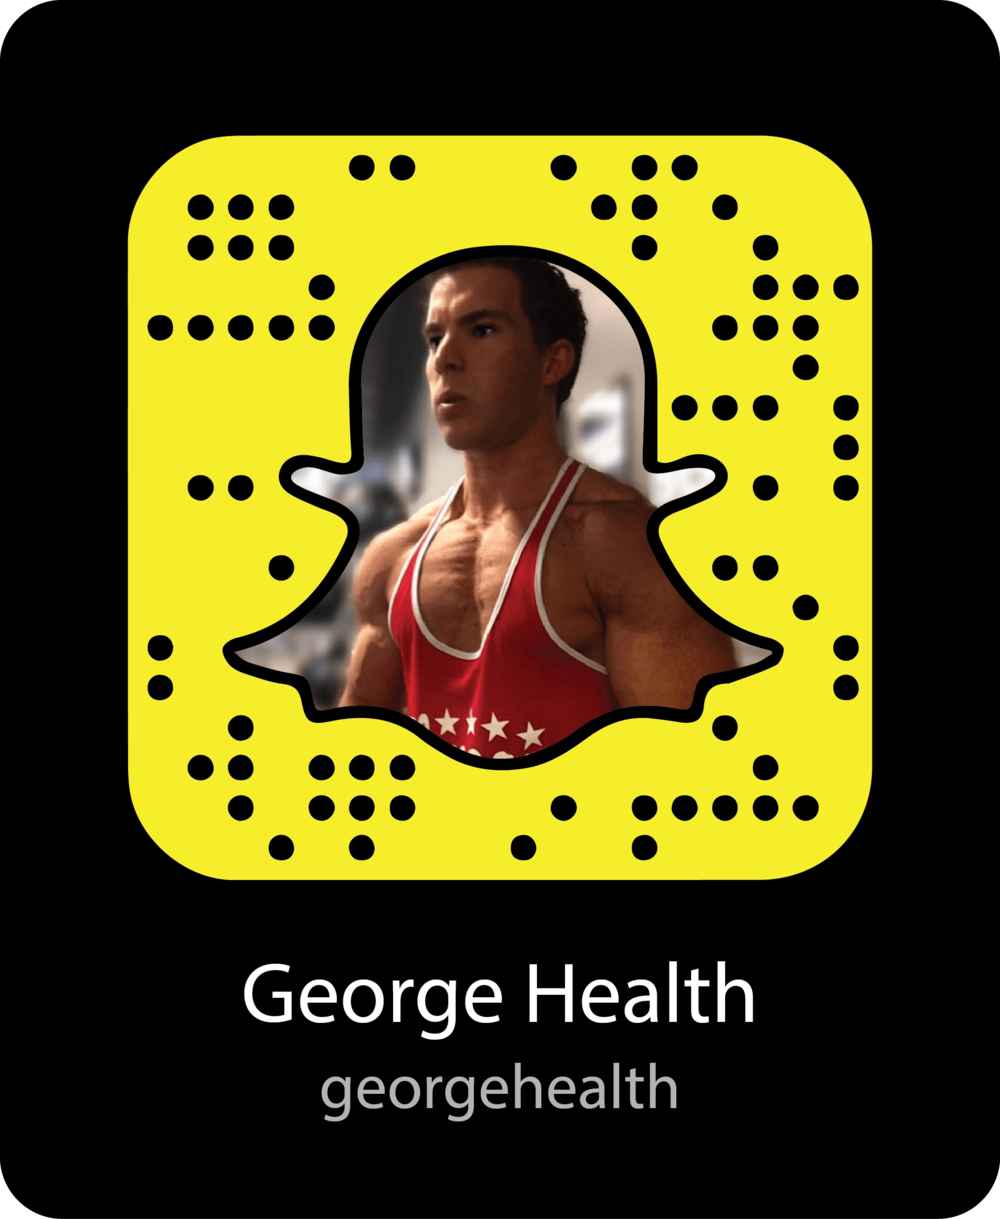 george-health-fitness-snapchat-snapcode.png